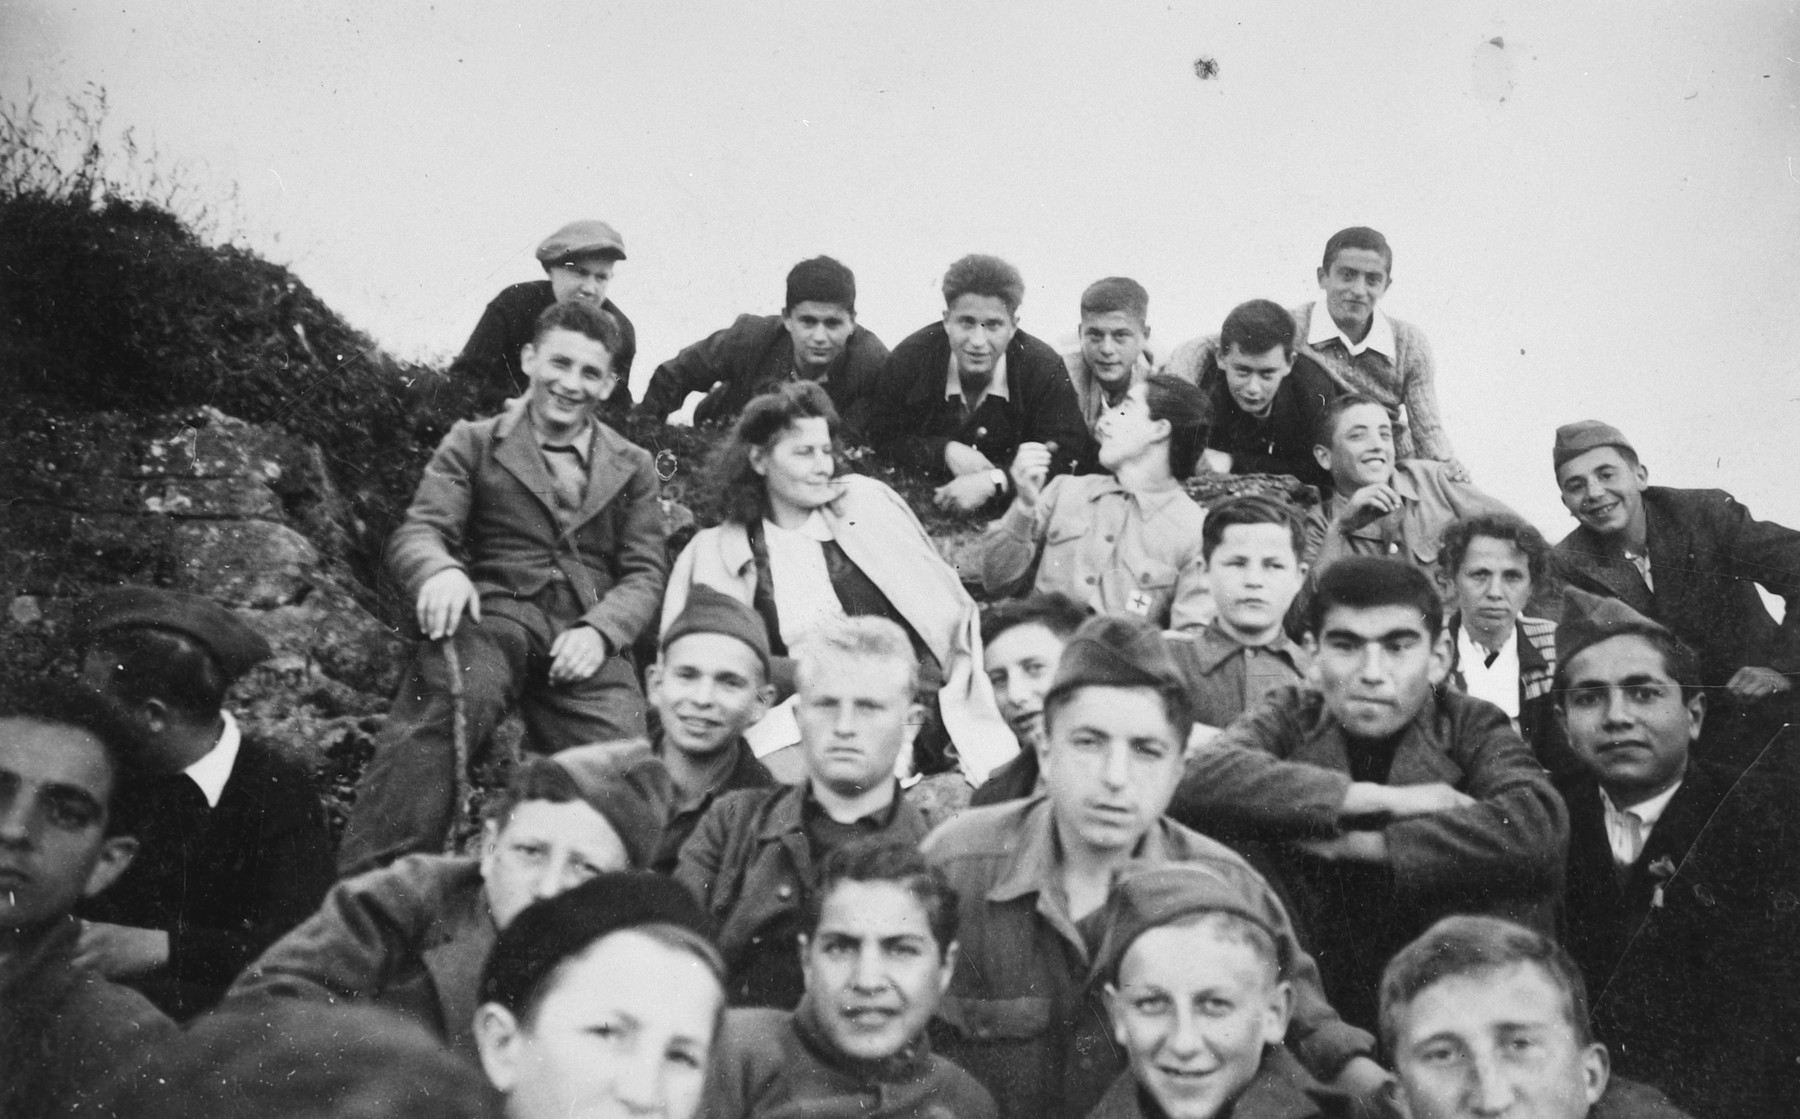 Group portrait of Jewish youth in a children's home in Switzerland.  Moniek Szmulewicz is among those pictured.  Monek (Murry) Goldfinger is on the far right, second from the top.